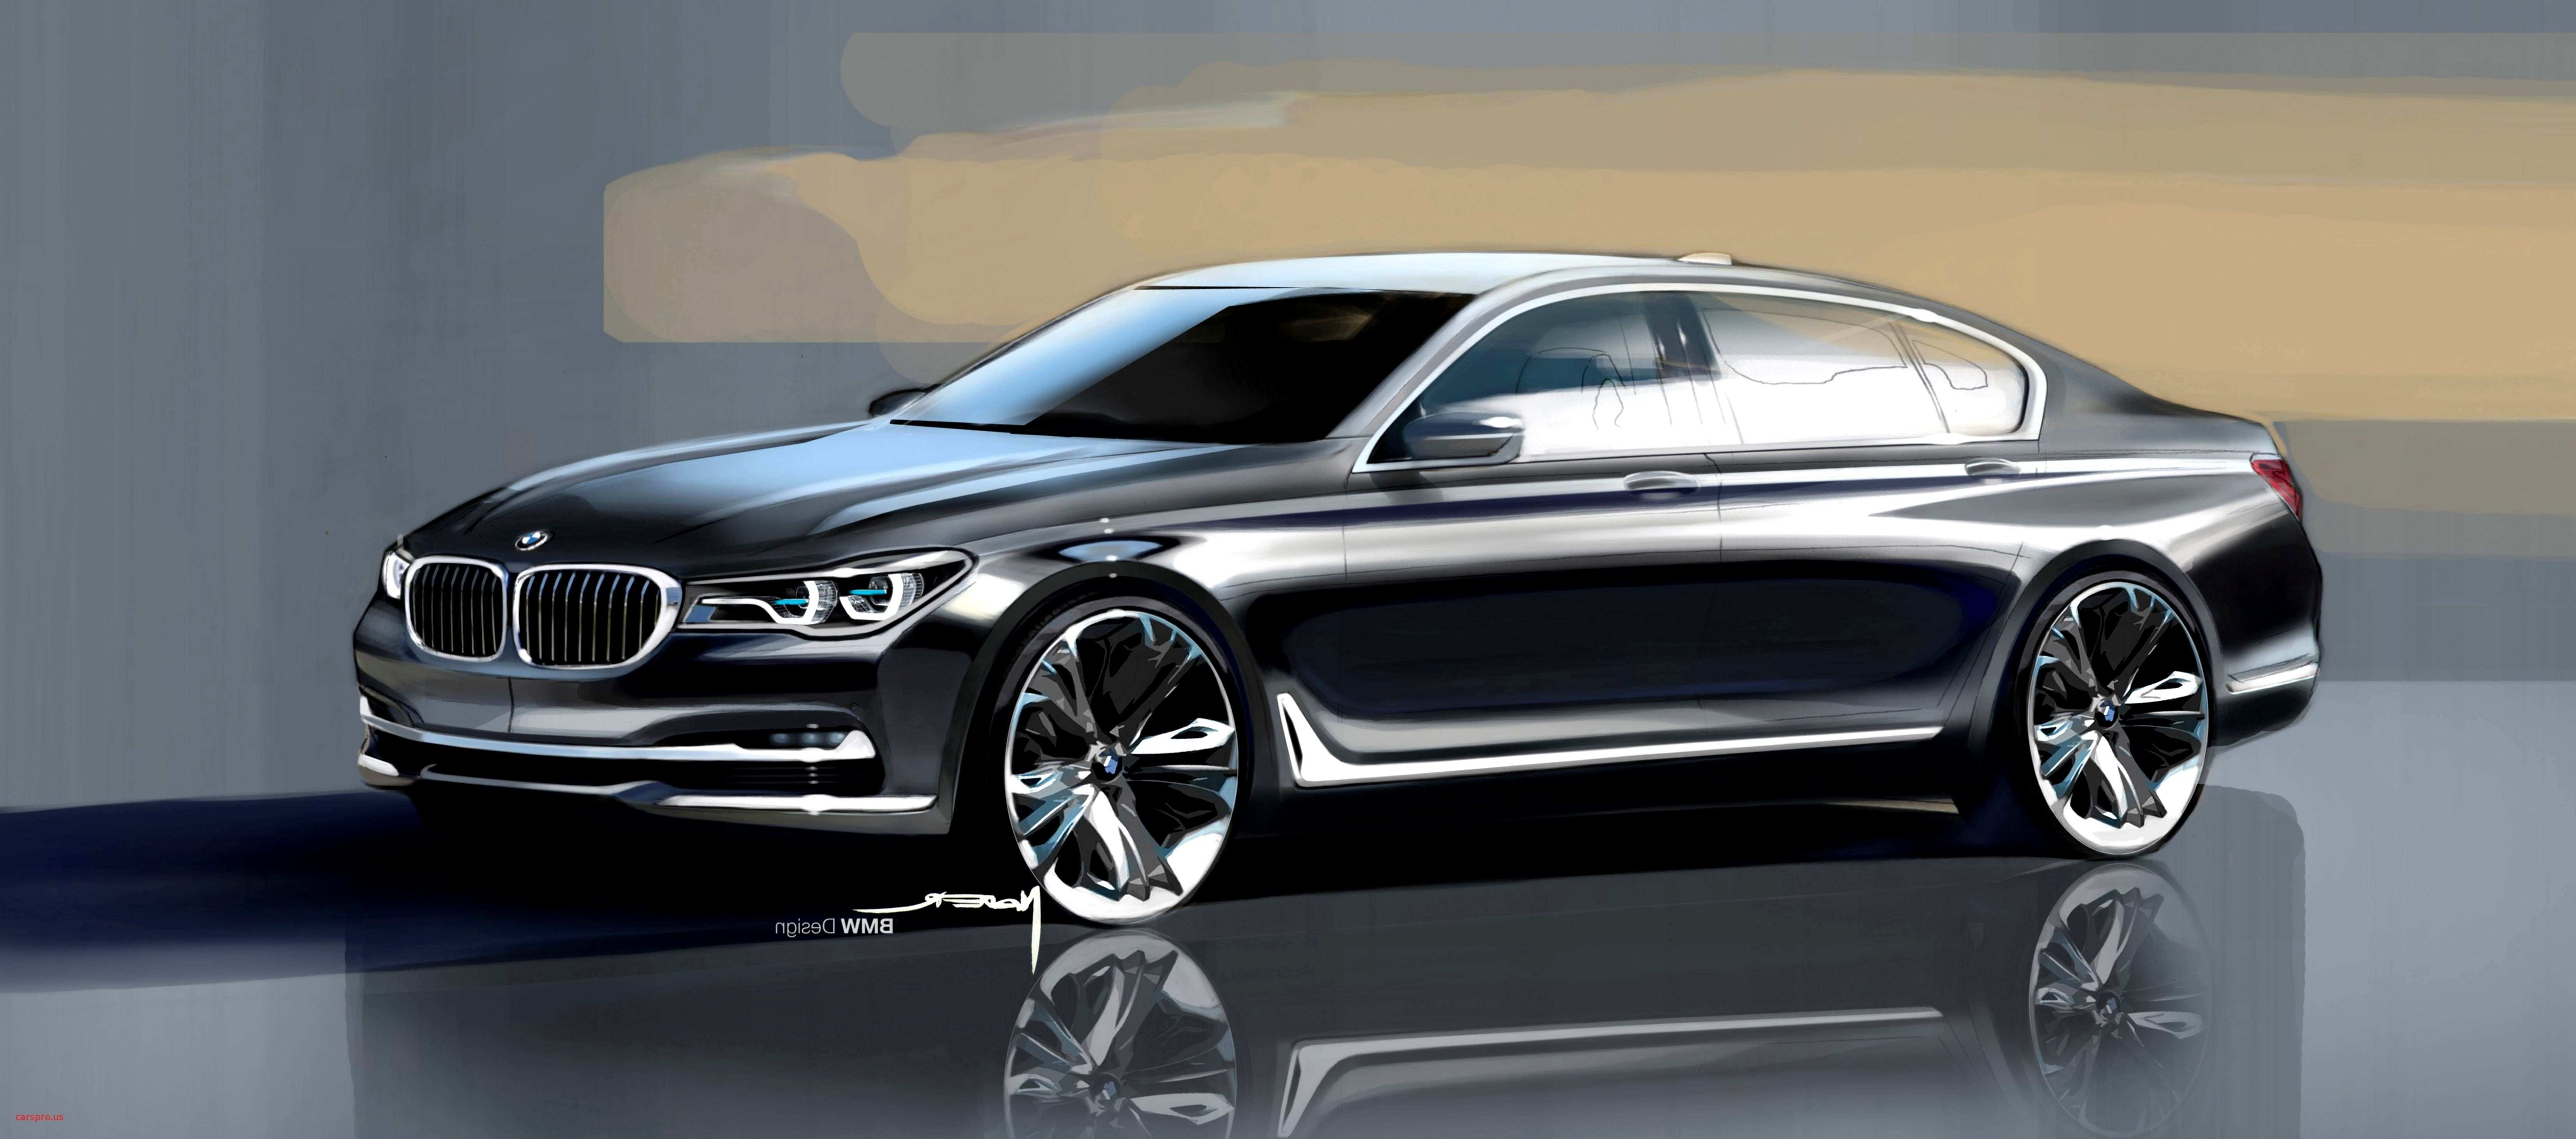 31 Best Review 2020 BMW Sierra 1500 New Concept Release Date with 2020 BMW Sierra 1500 New Concept